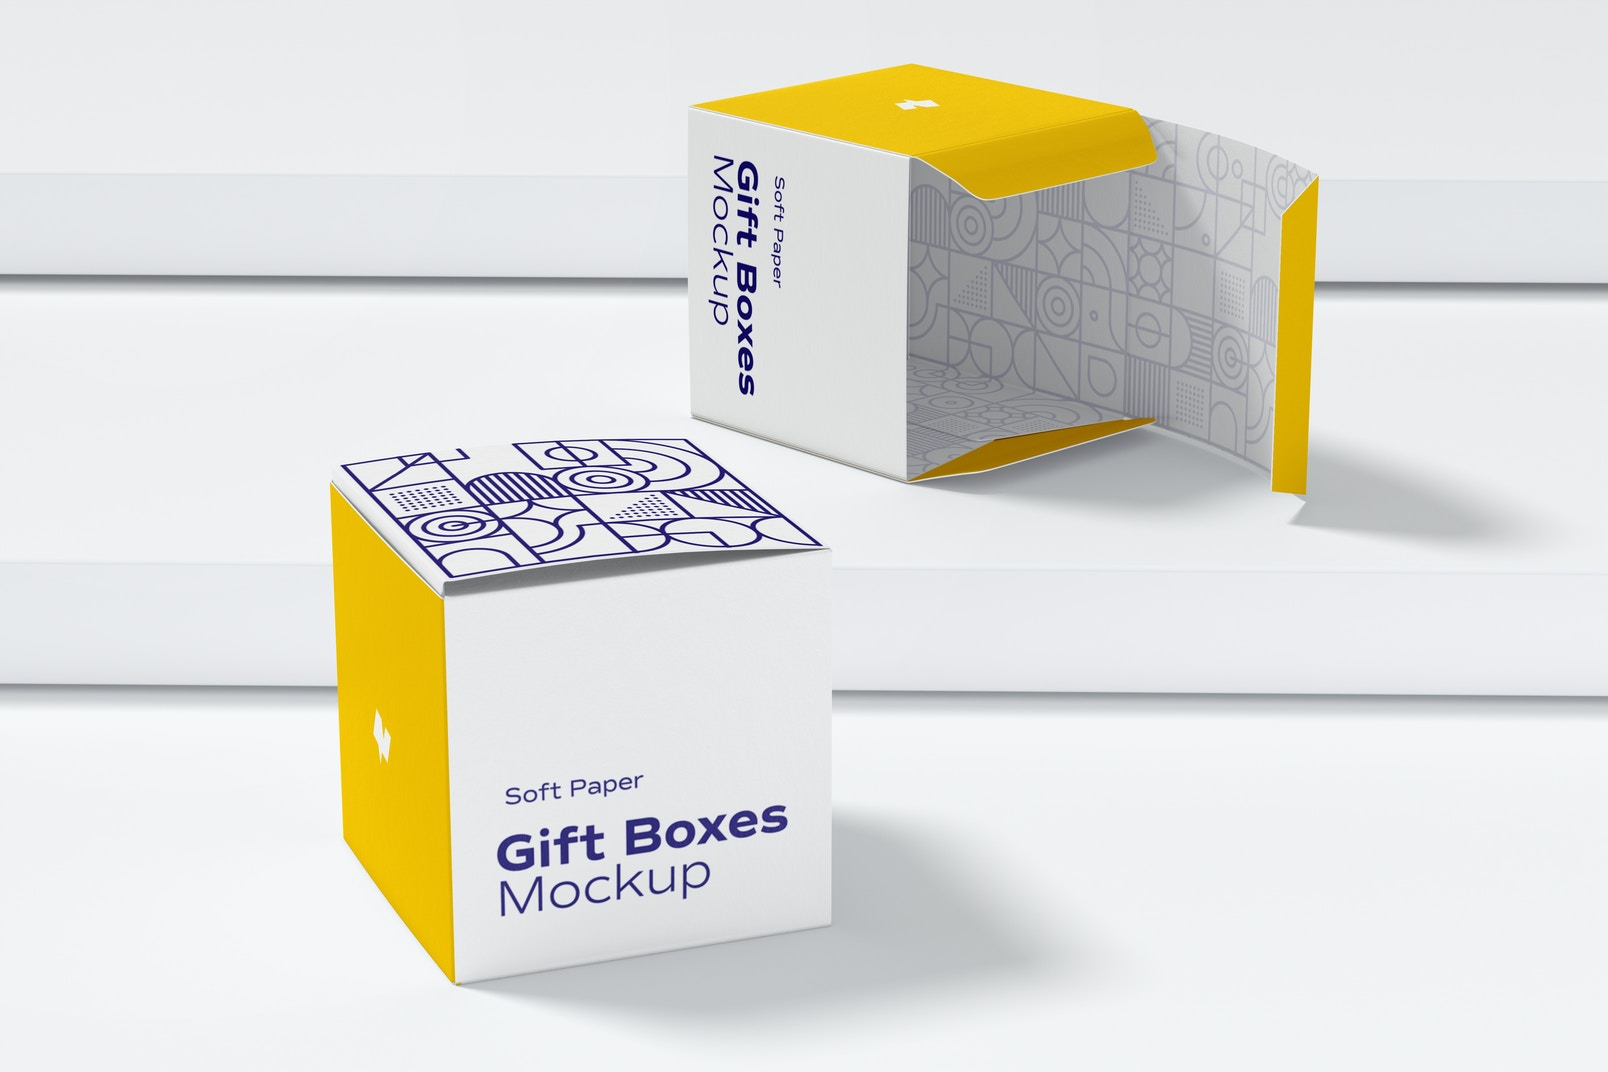 Soft Paper Gift Boxes Mockup, Perspective